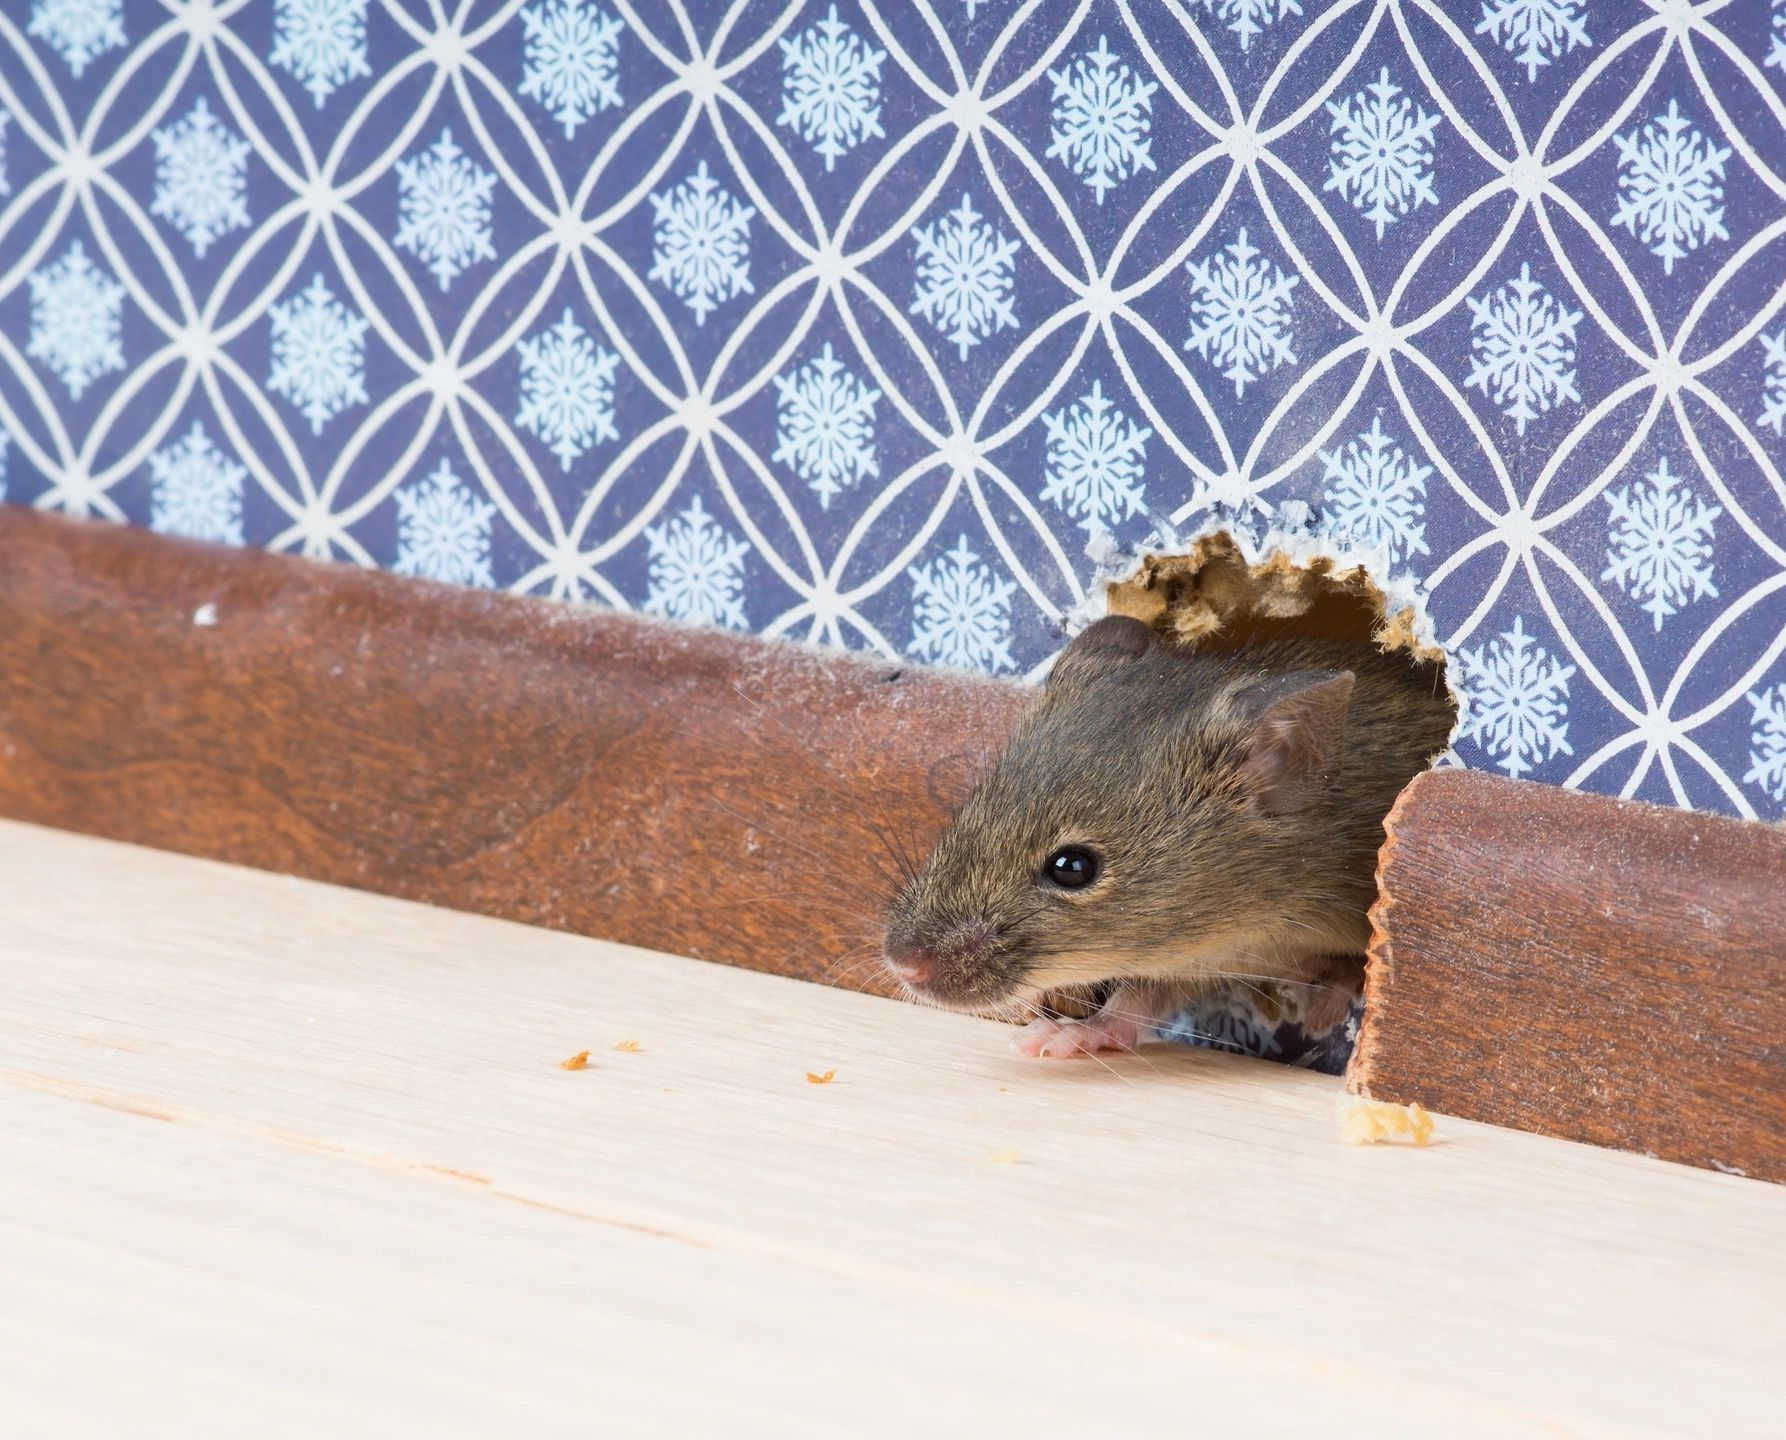 The 5 Best Ways of Getting Rid of Rodents